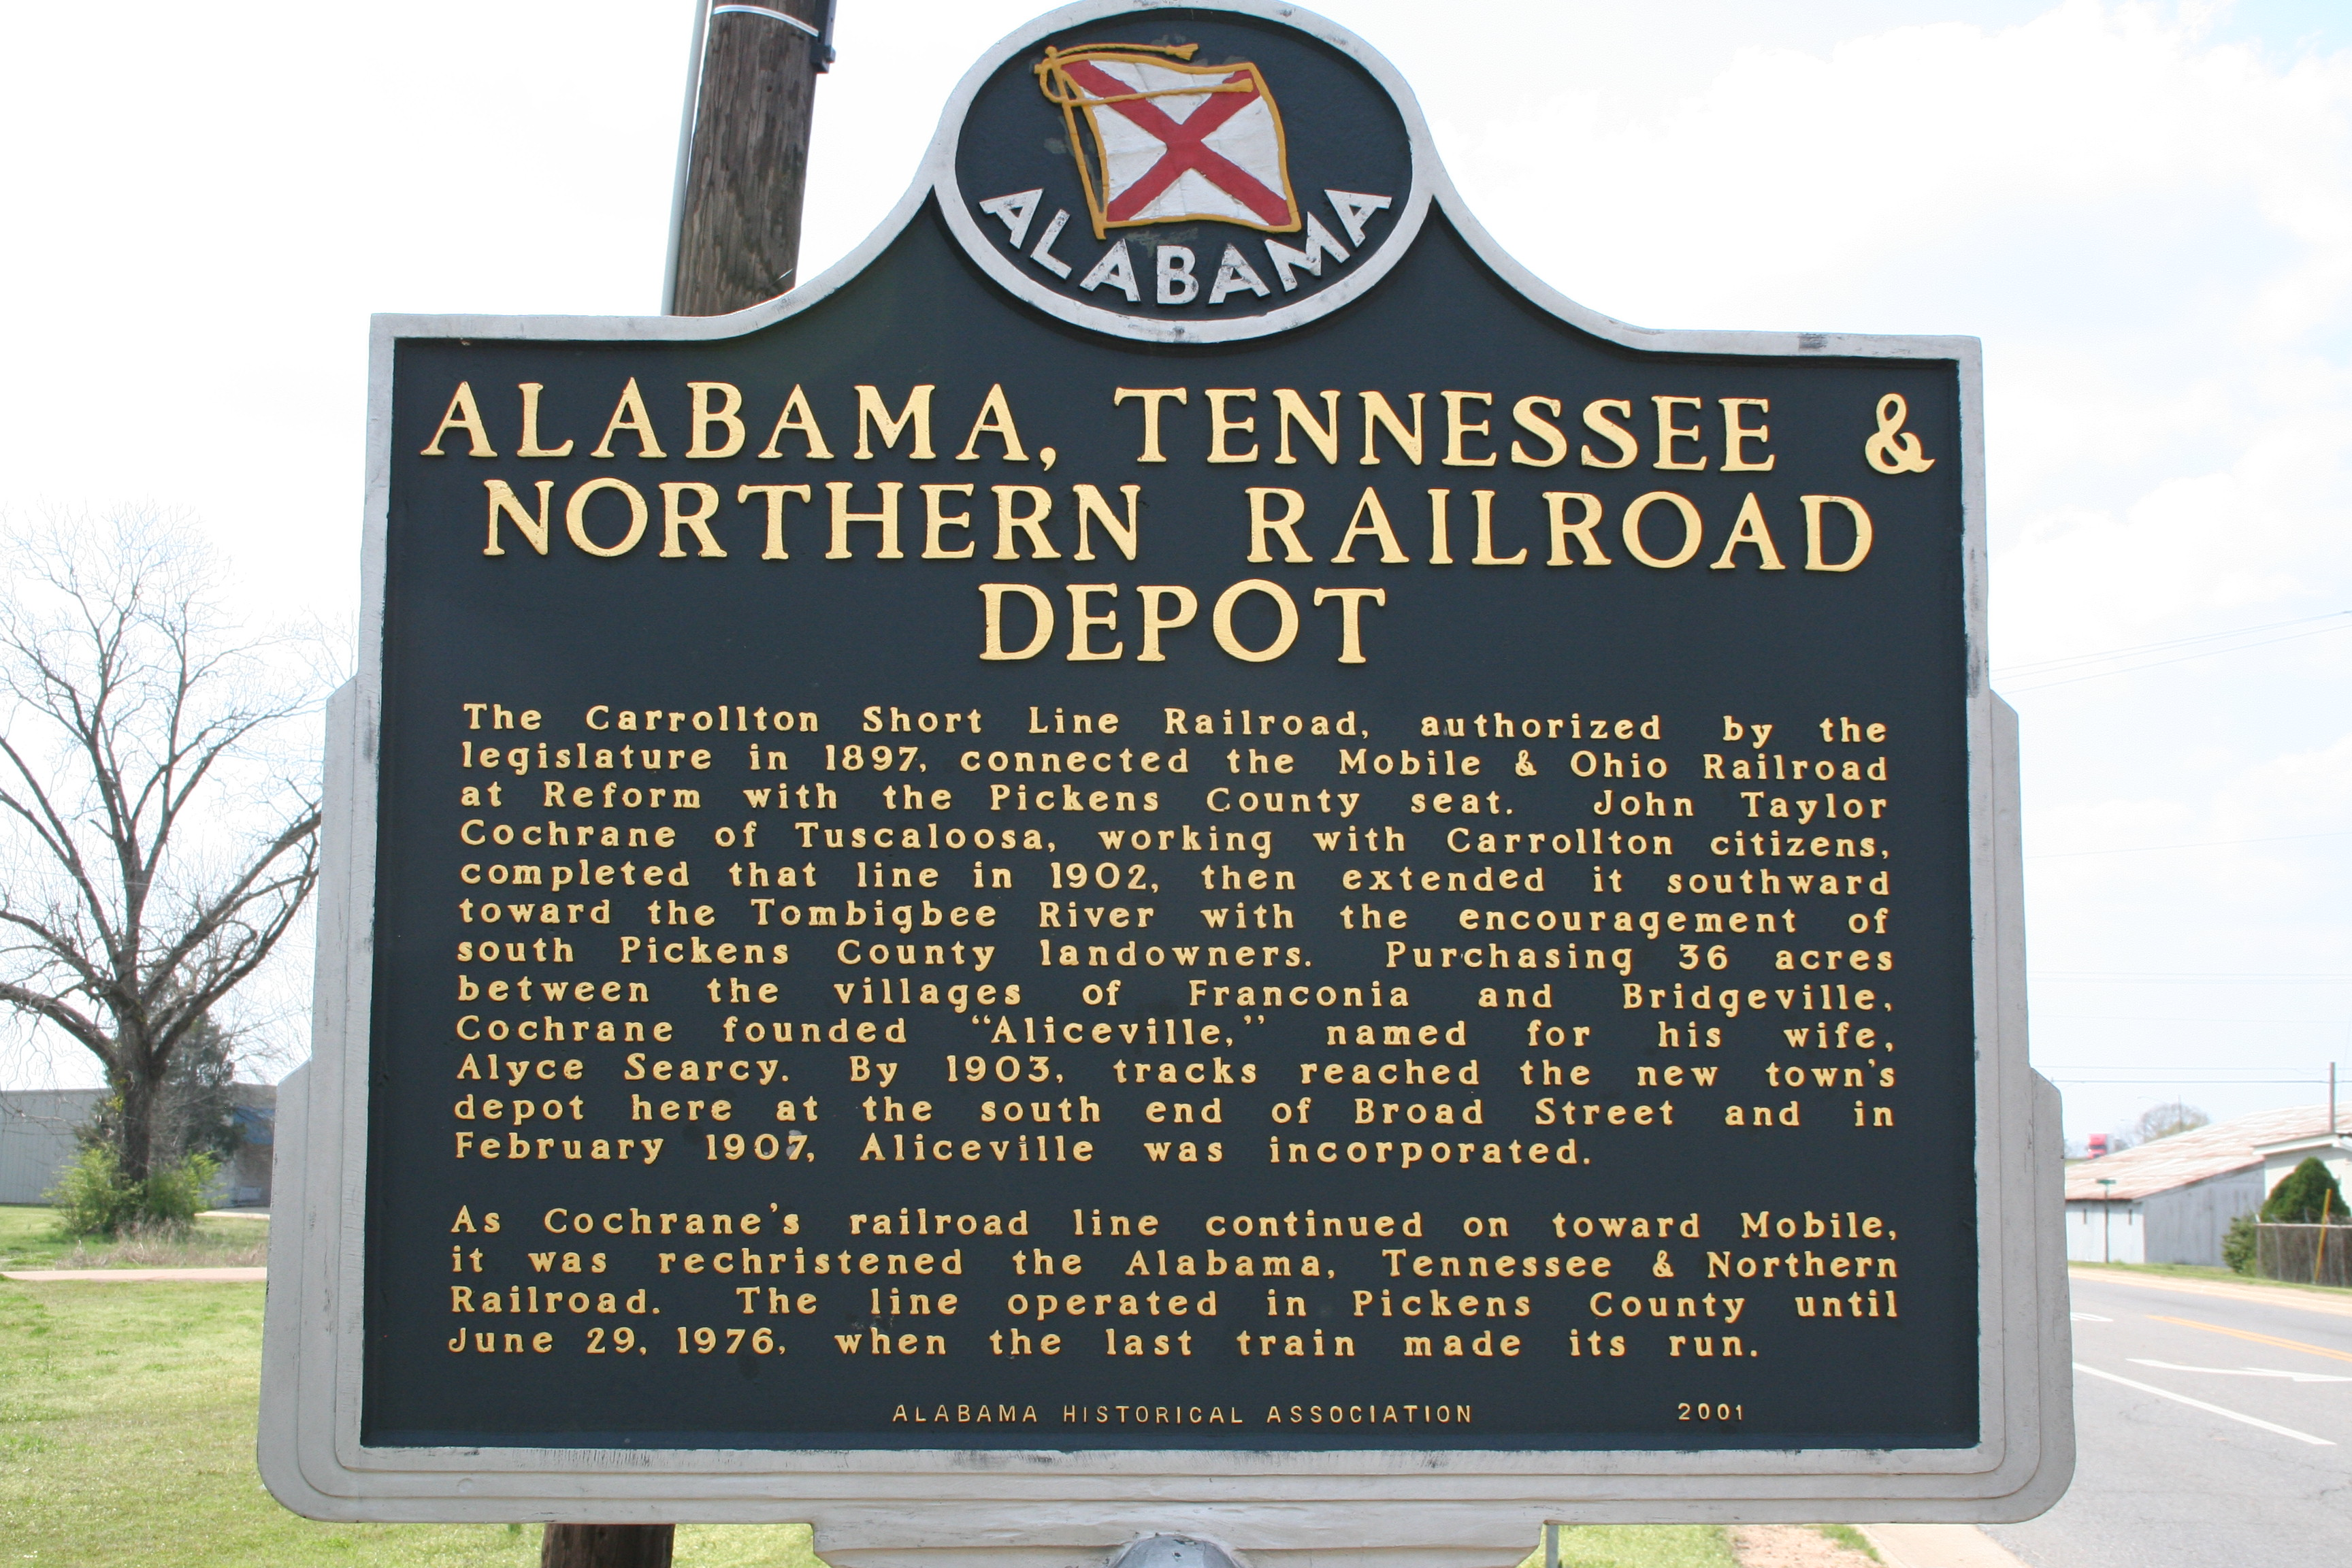 Historical marker in Aliceville, AL